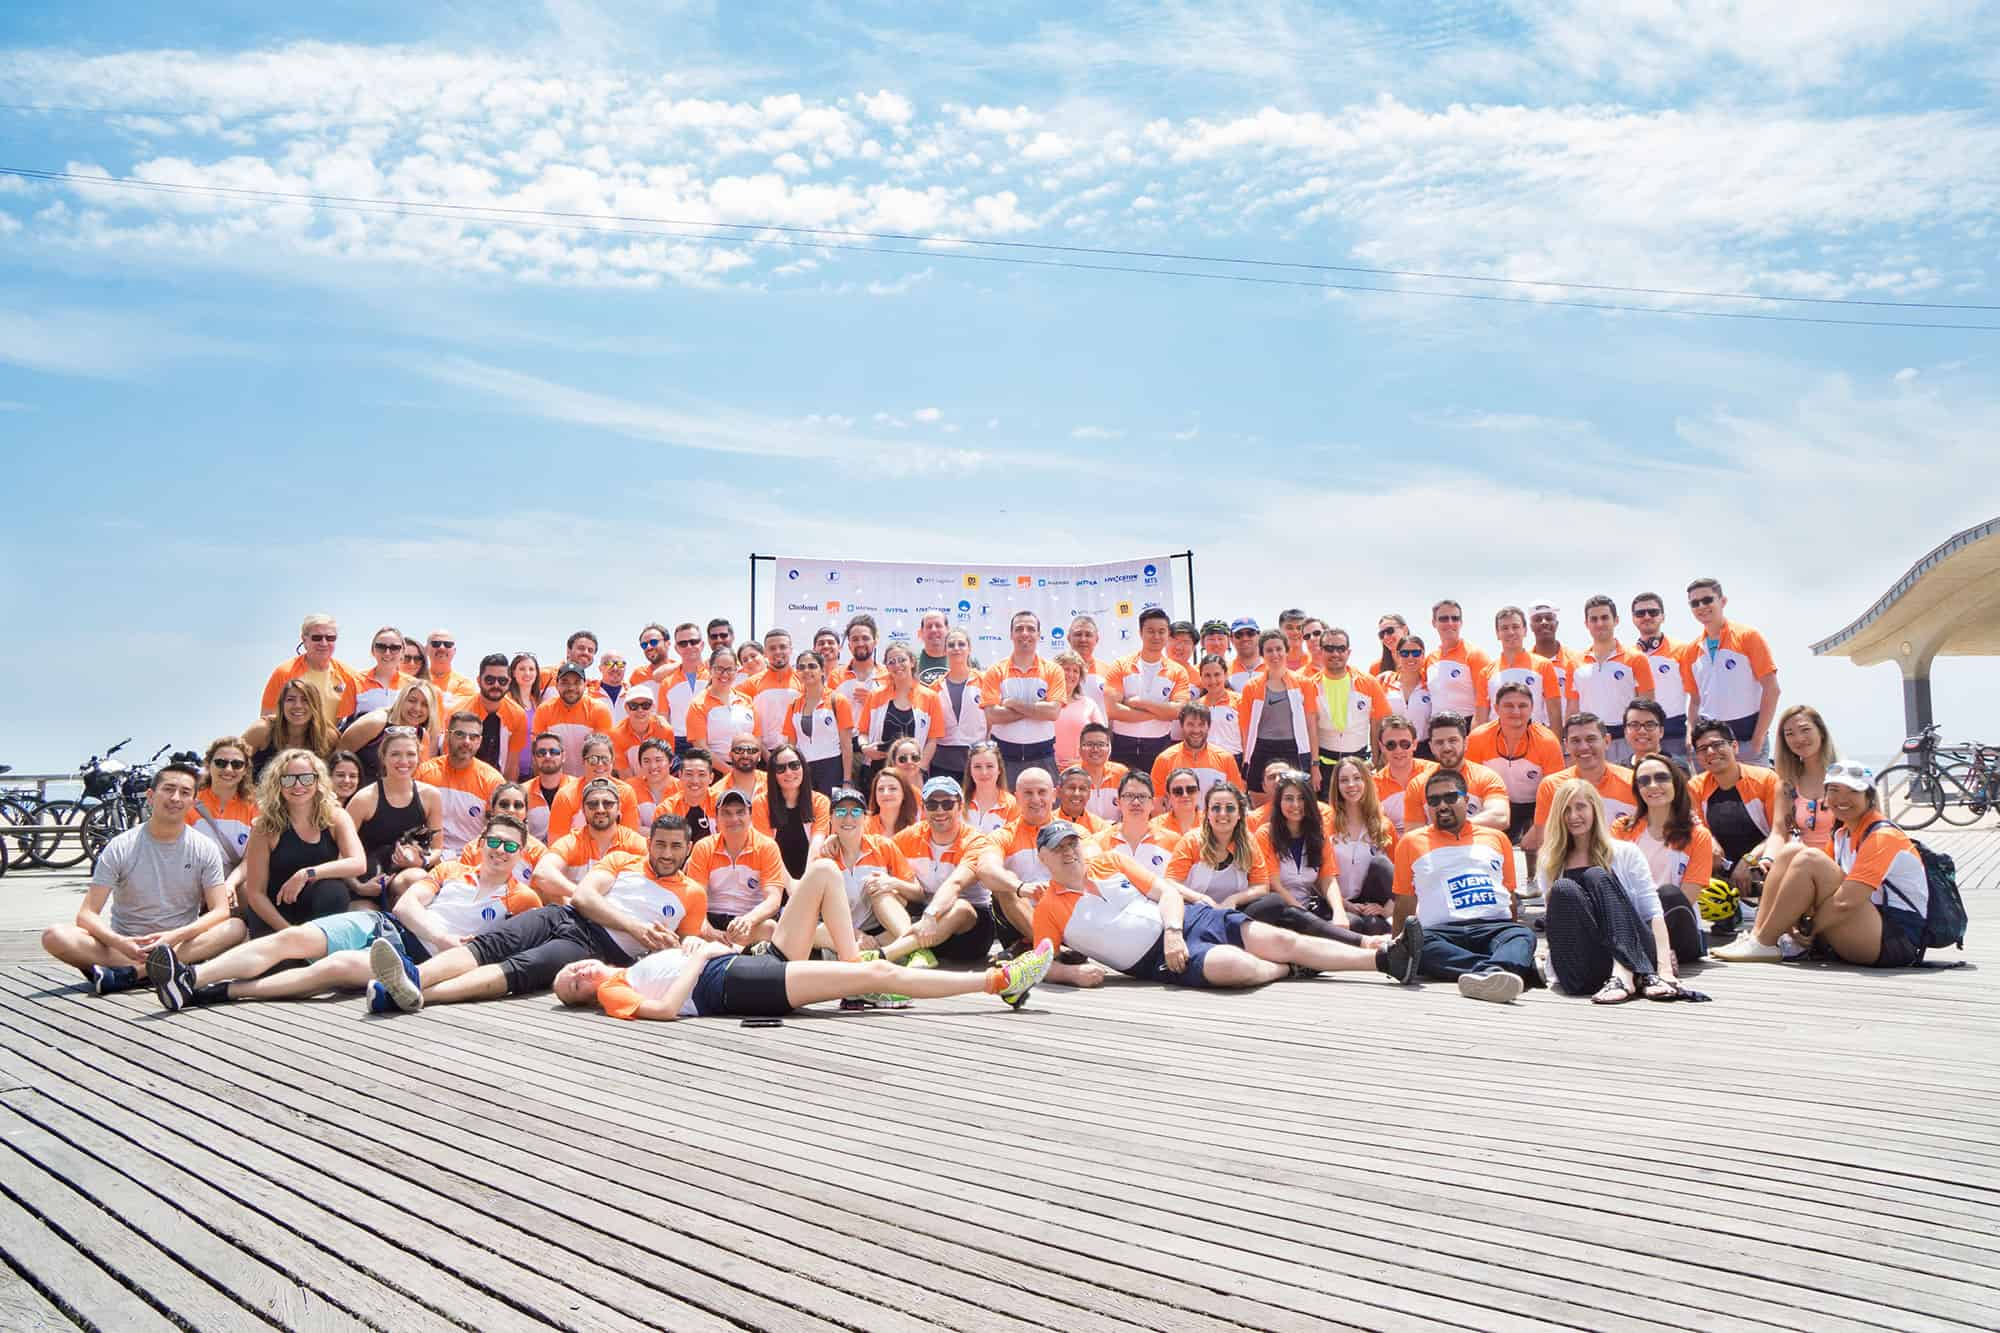 MTS Logistics Held 8th Annual Bike Tour with MTS for Autism, Successfully Raising Over $21,900 for Autism Awareness with Support from Top Multinational Companies